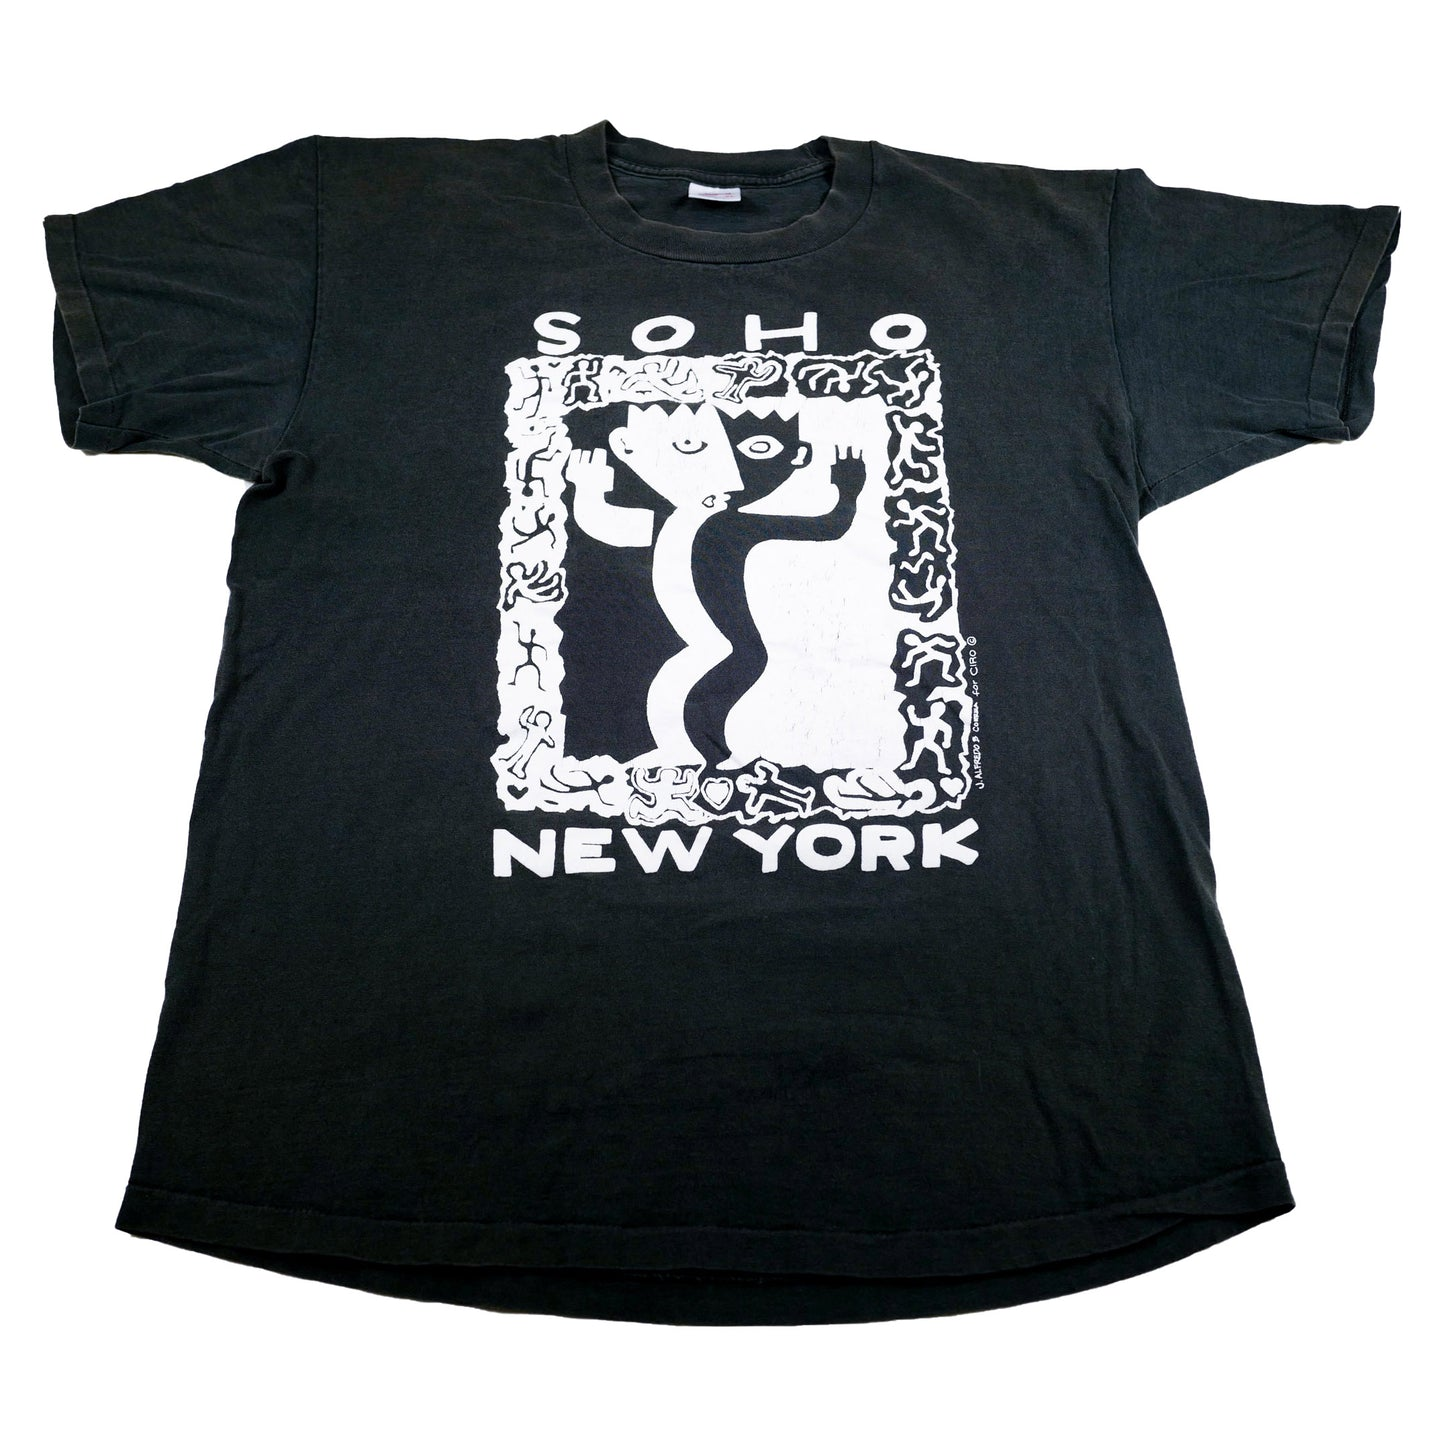 Vintage Soho, New York Correa Tee